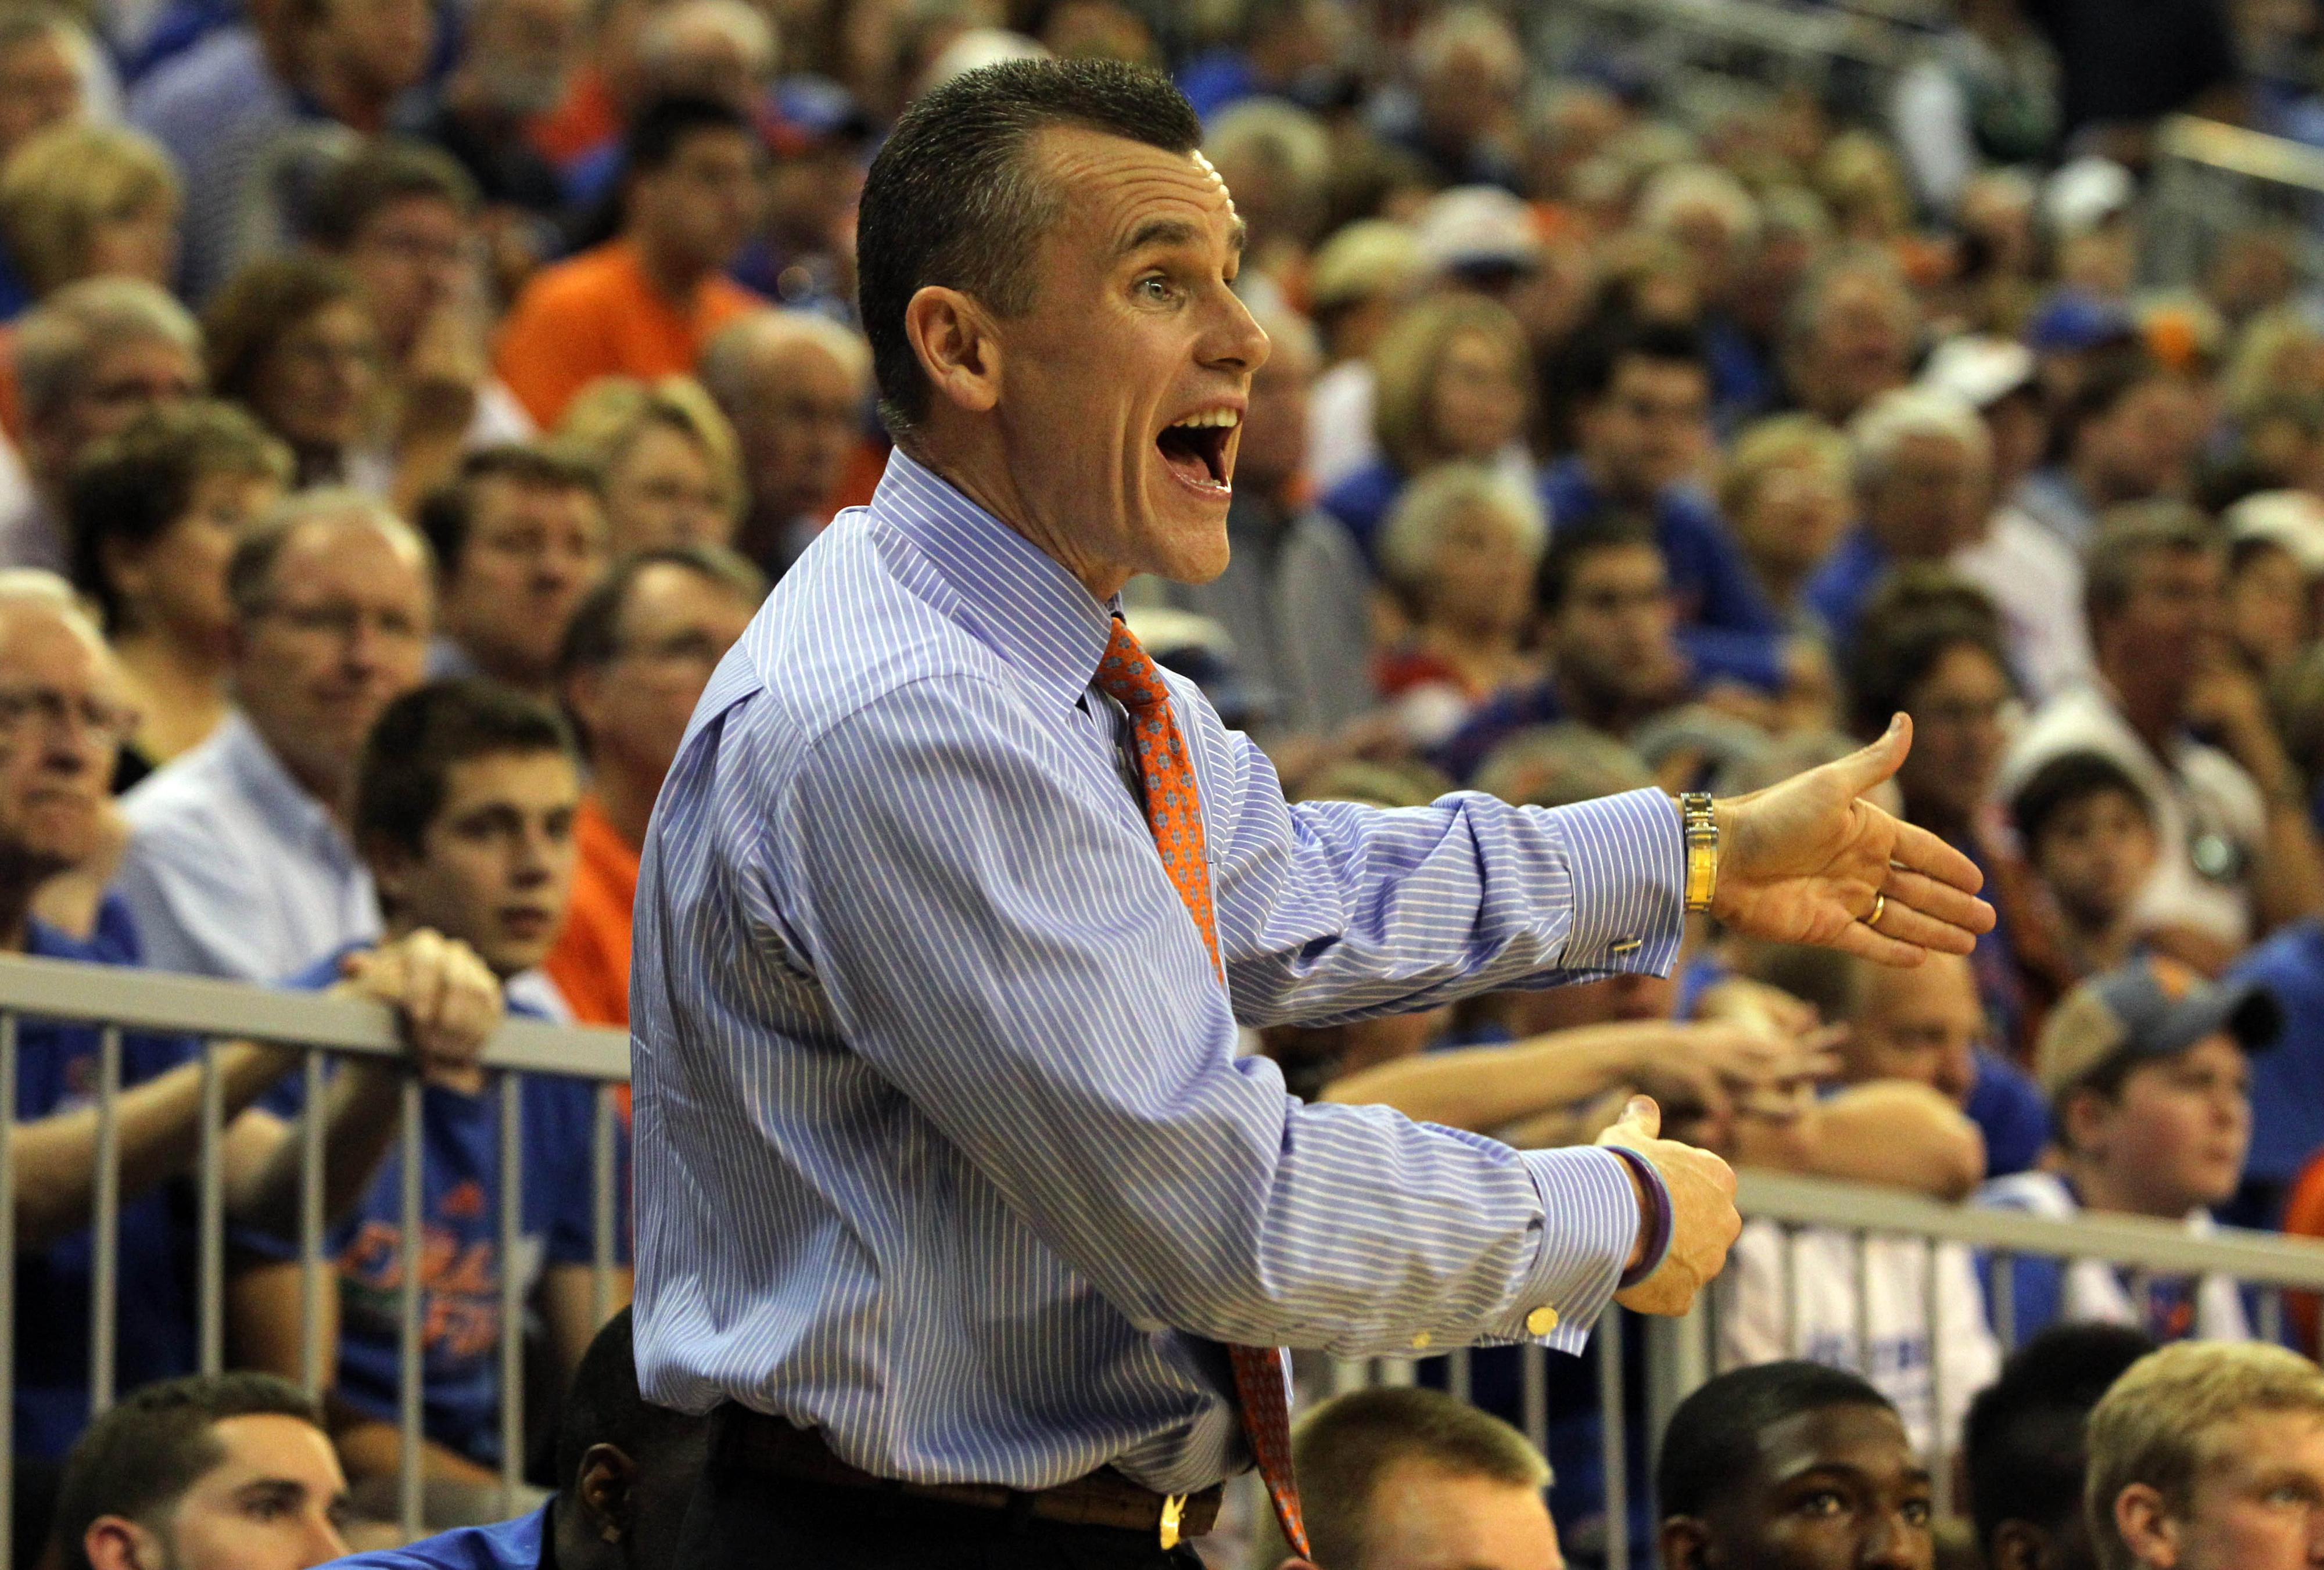 This is as close as we get to Billy Donovan smiling in our photo tool.